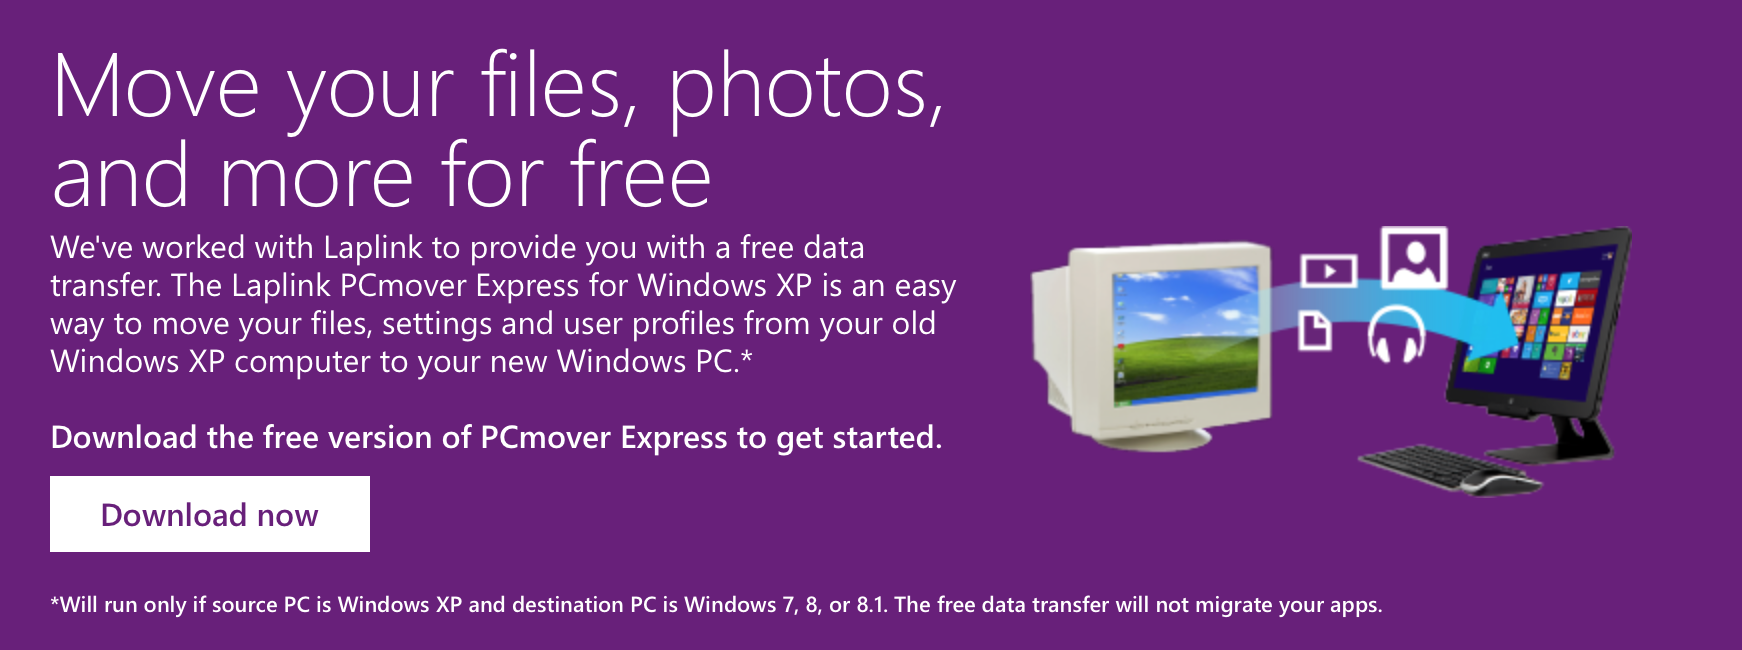 PCmover Express for Windows XP